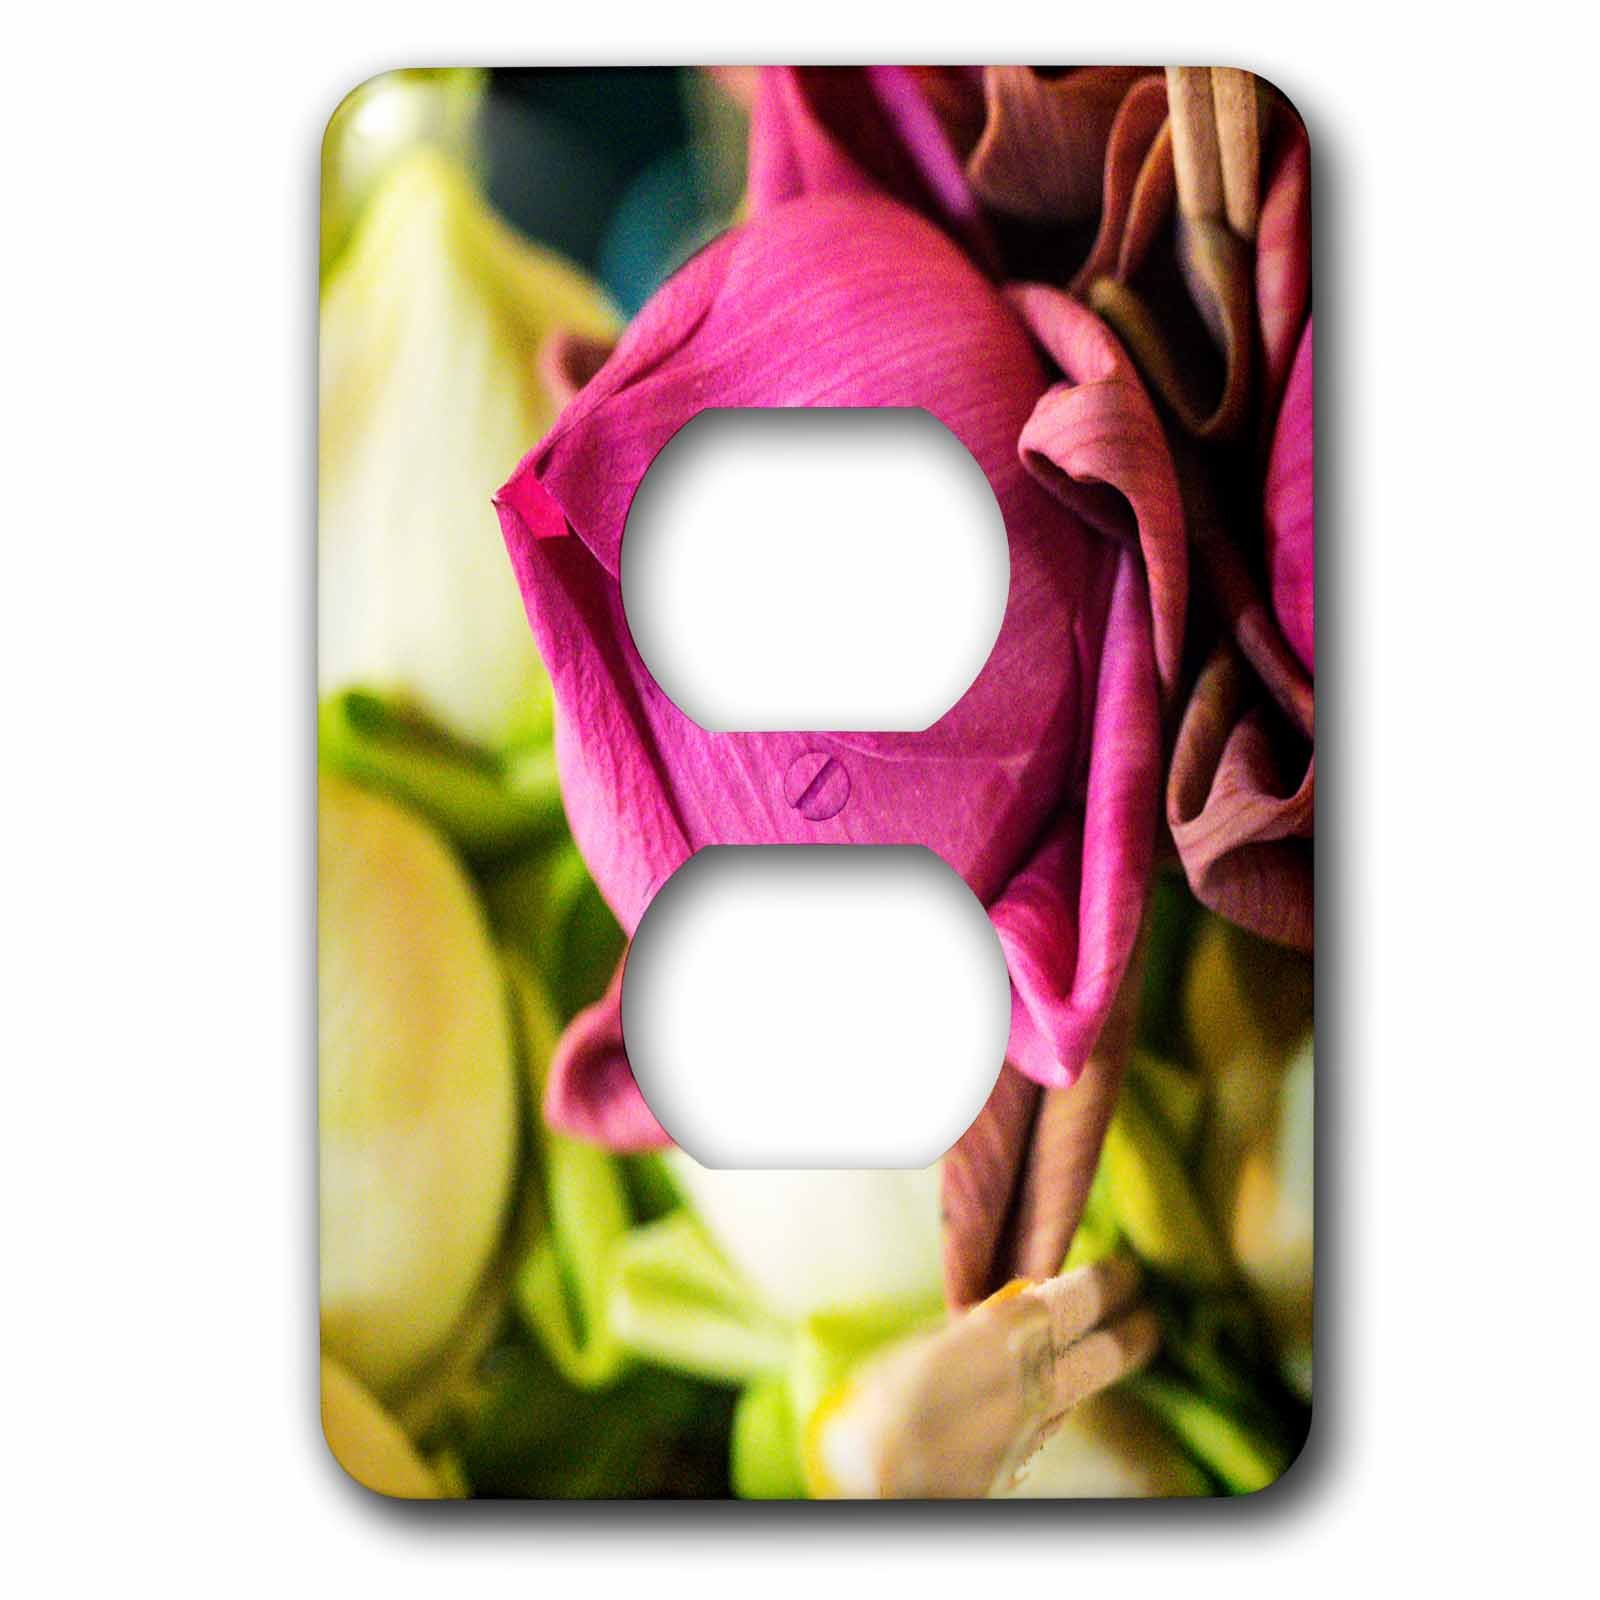 3dRose Danita Delimont - Flowers - Thailand, Chiang Mai, Flowers at the Thai Market Place - Light Switch Covers - 2 plug outlet cover (lsp_276974_6) by 3dRose